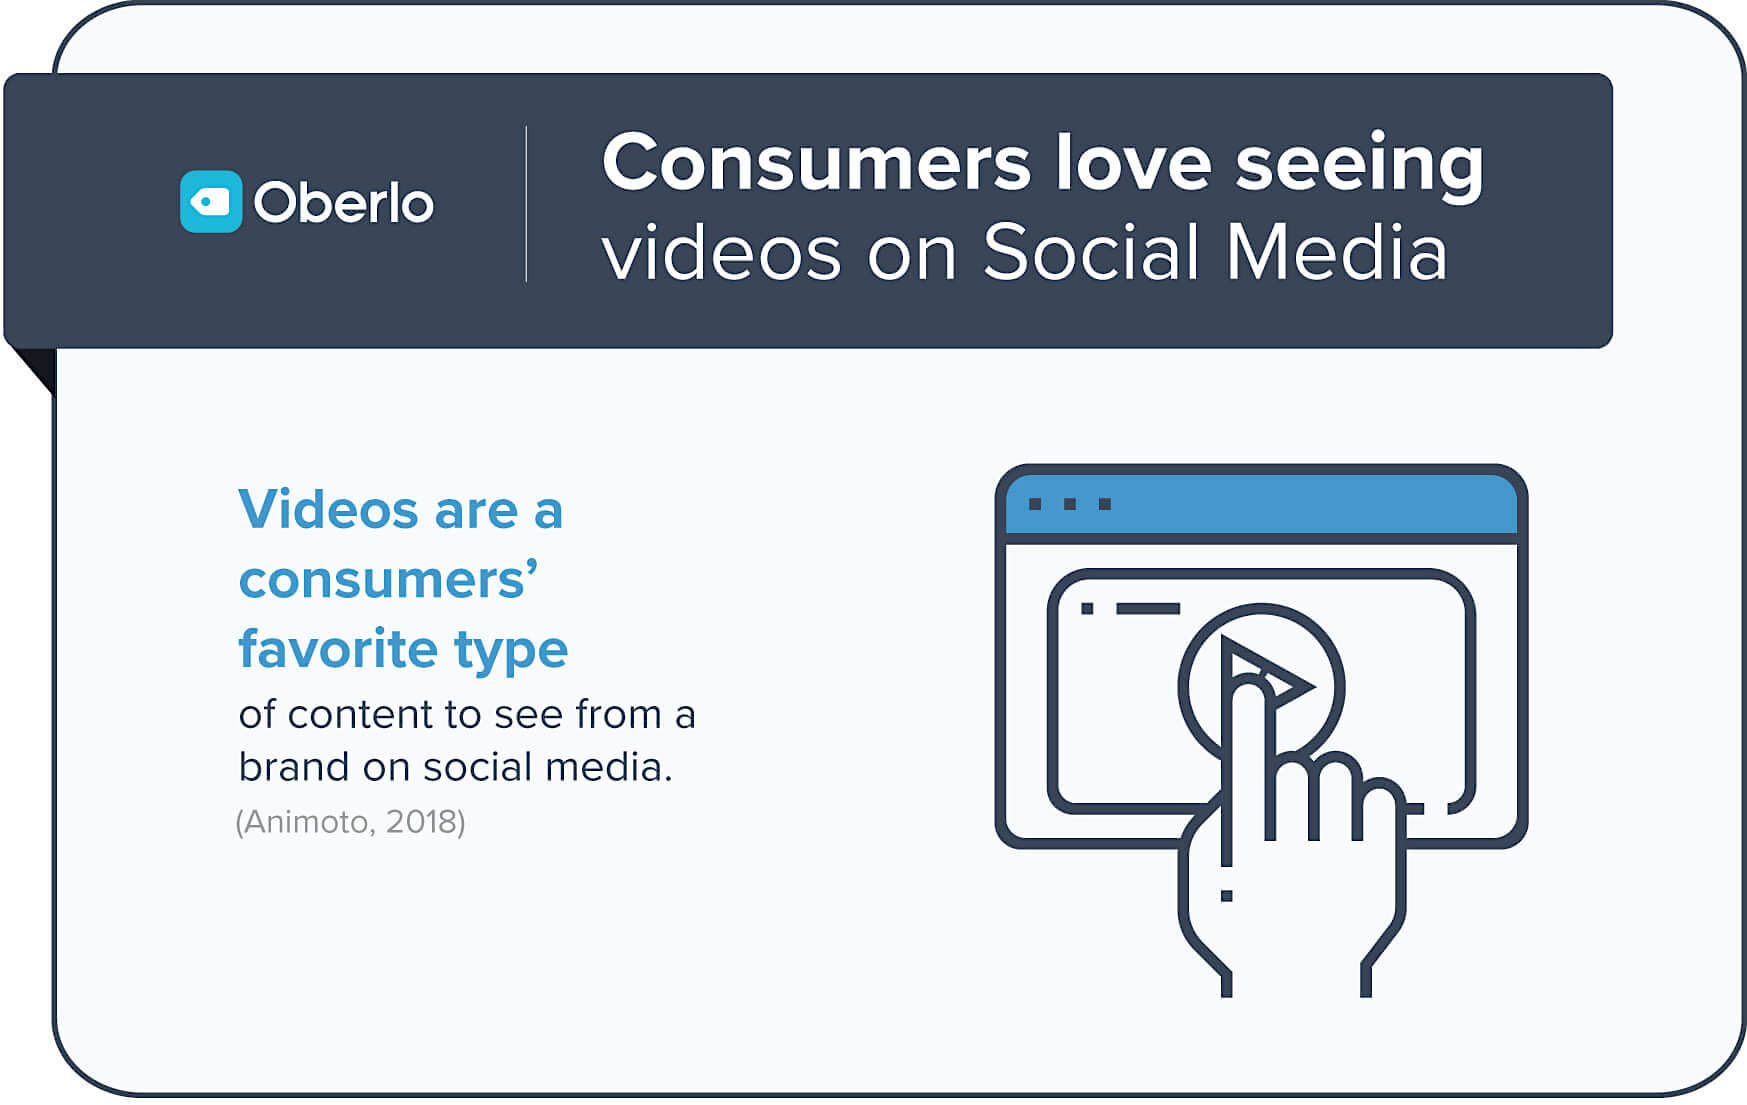 video-content-on-social-media